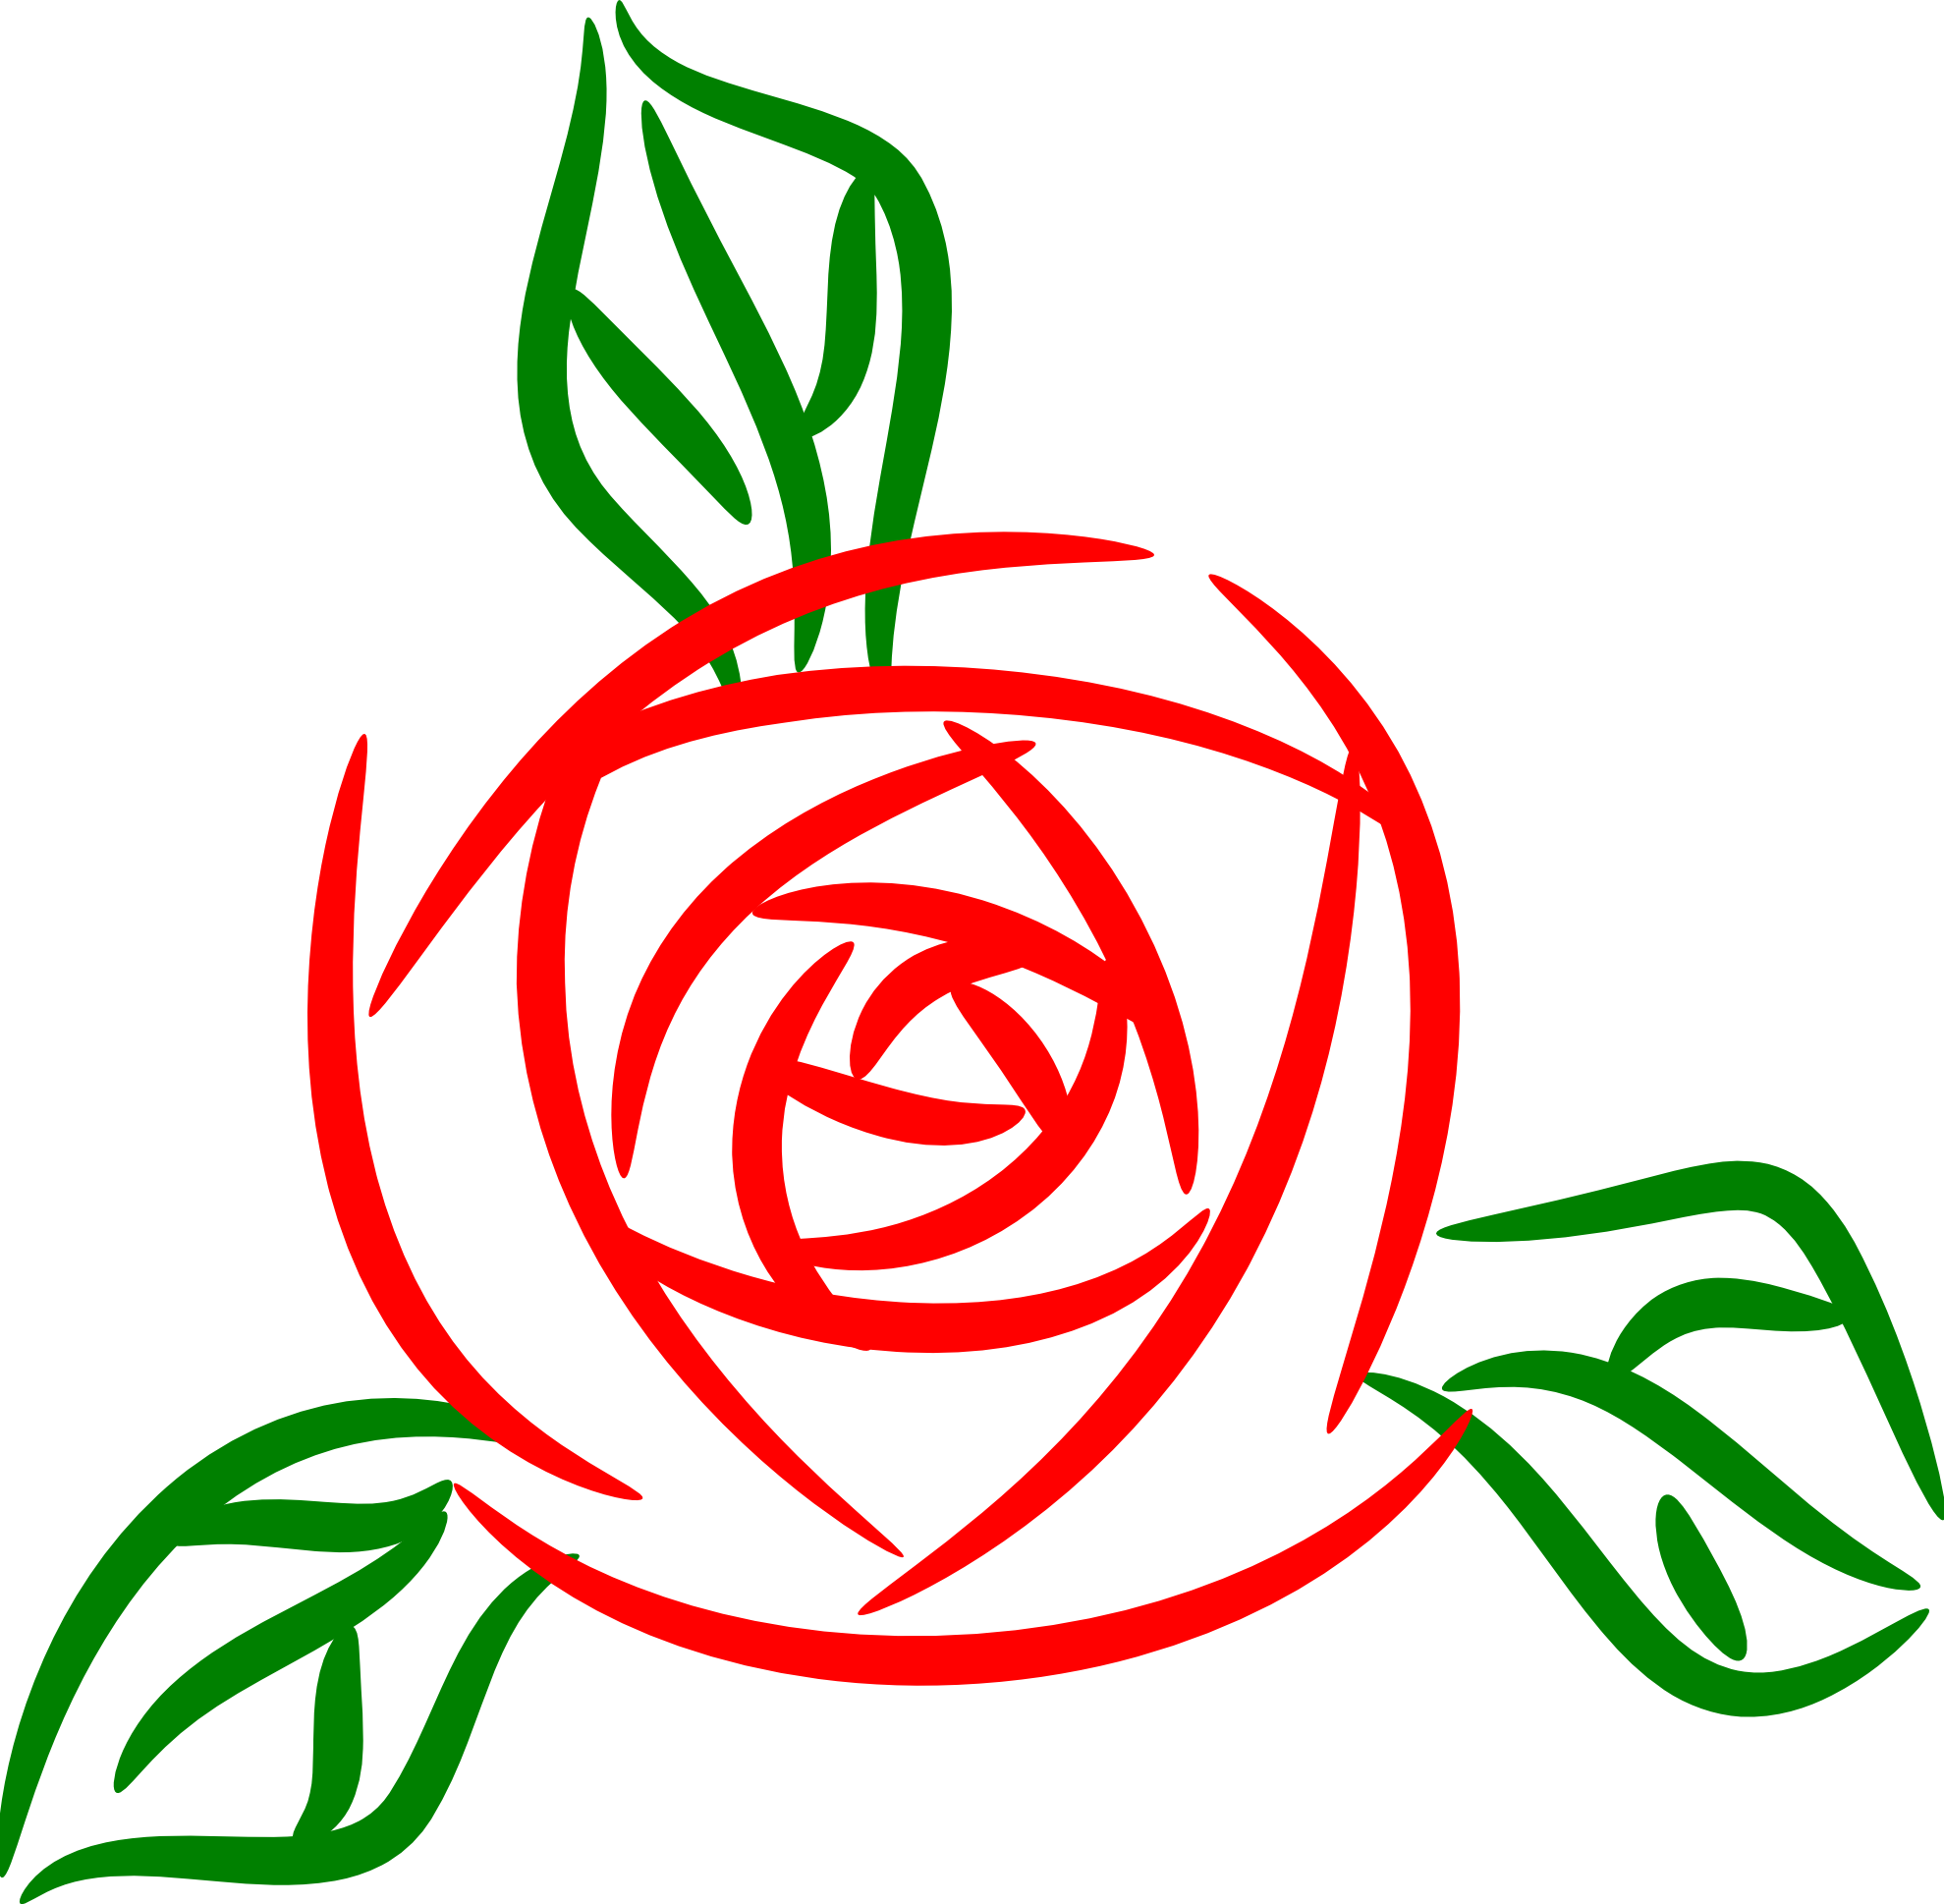 Christmas rose clipart.